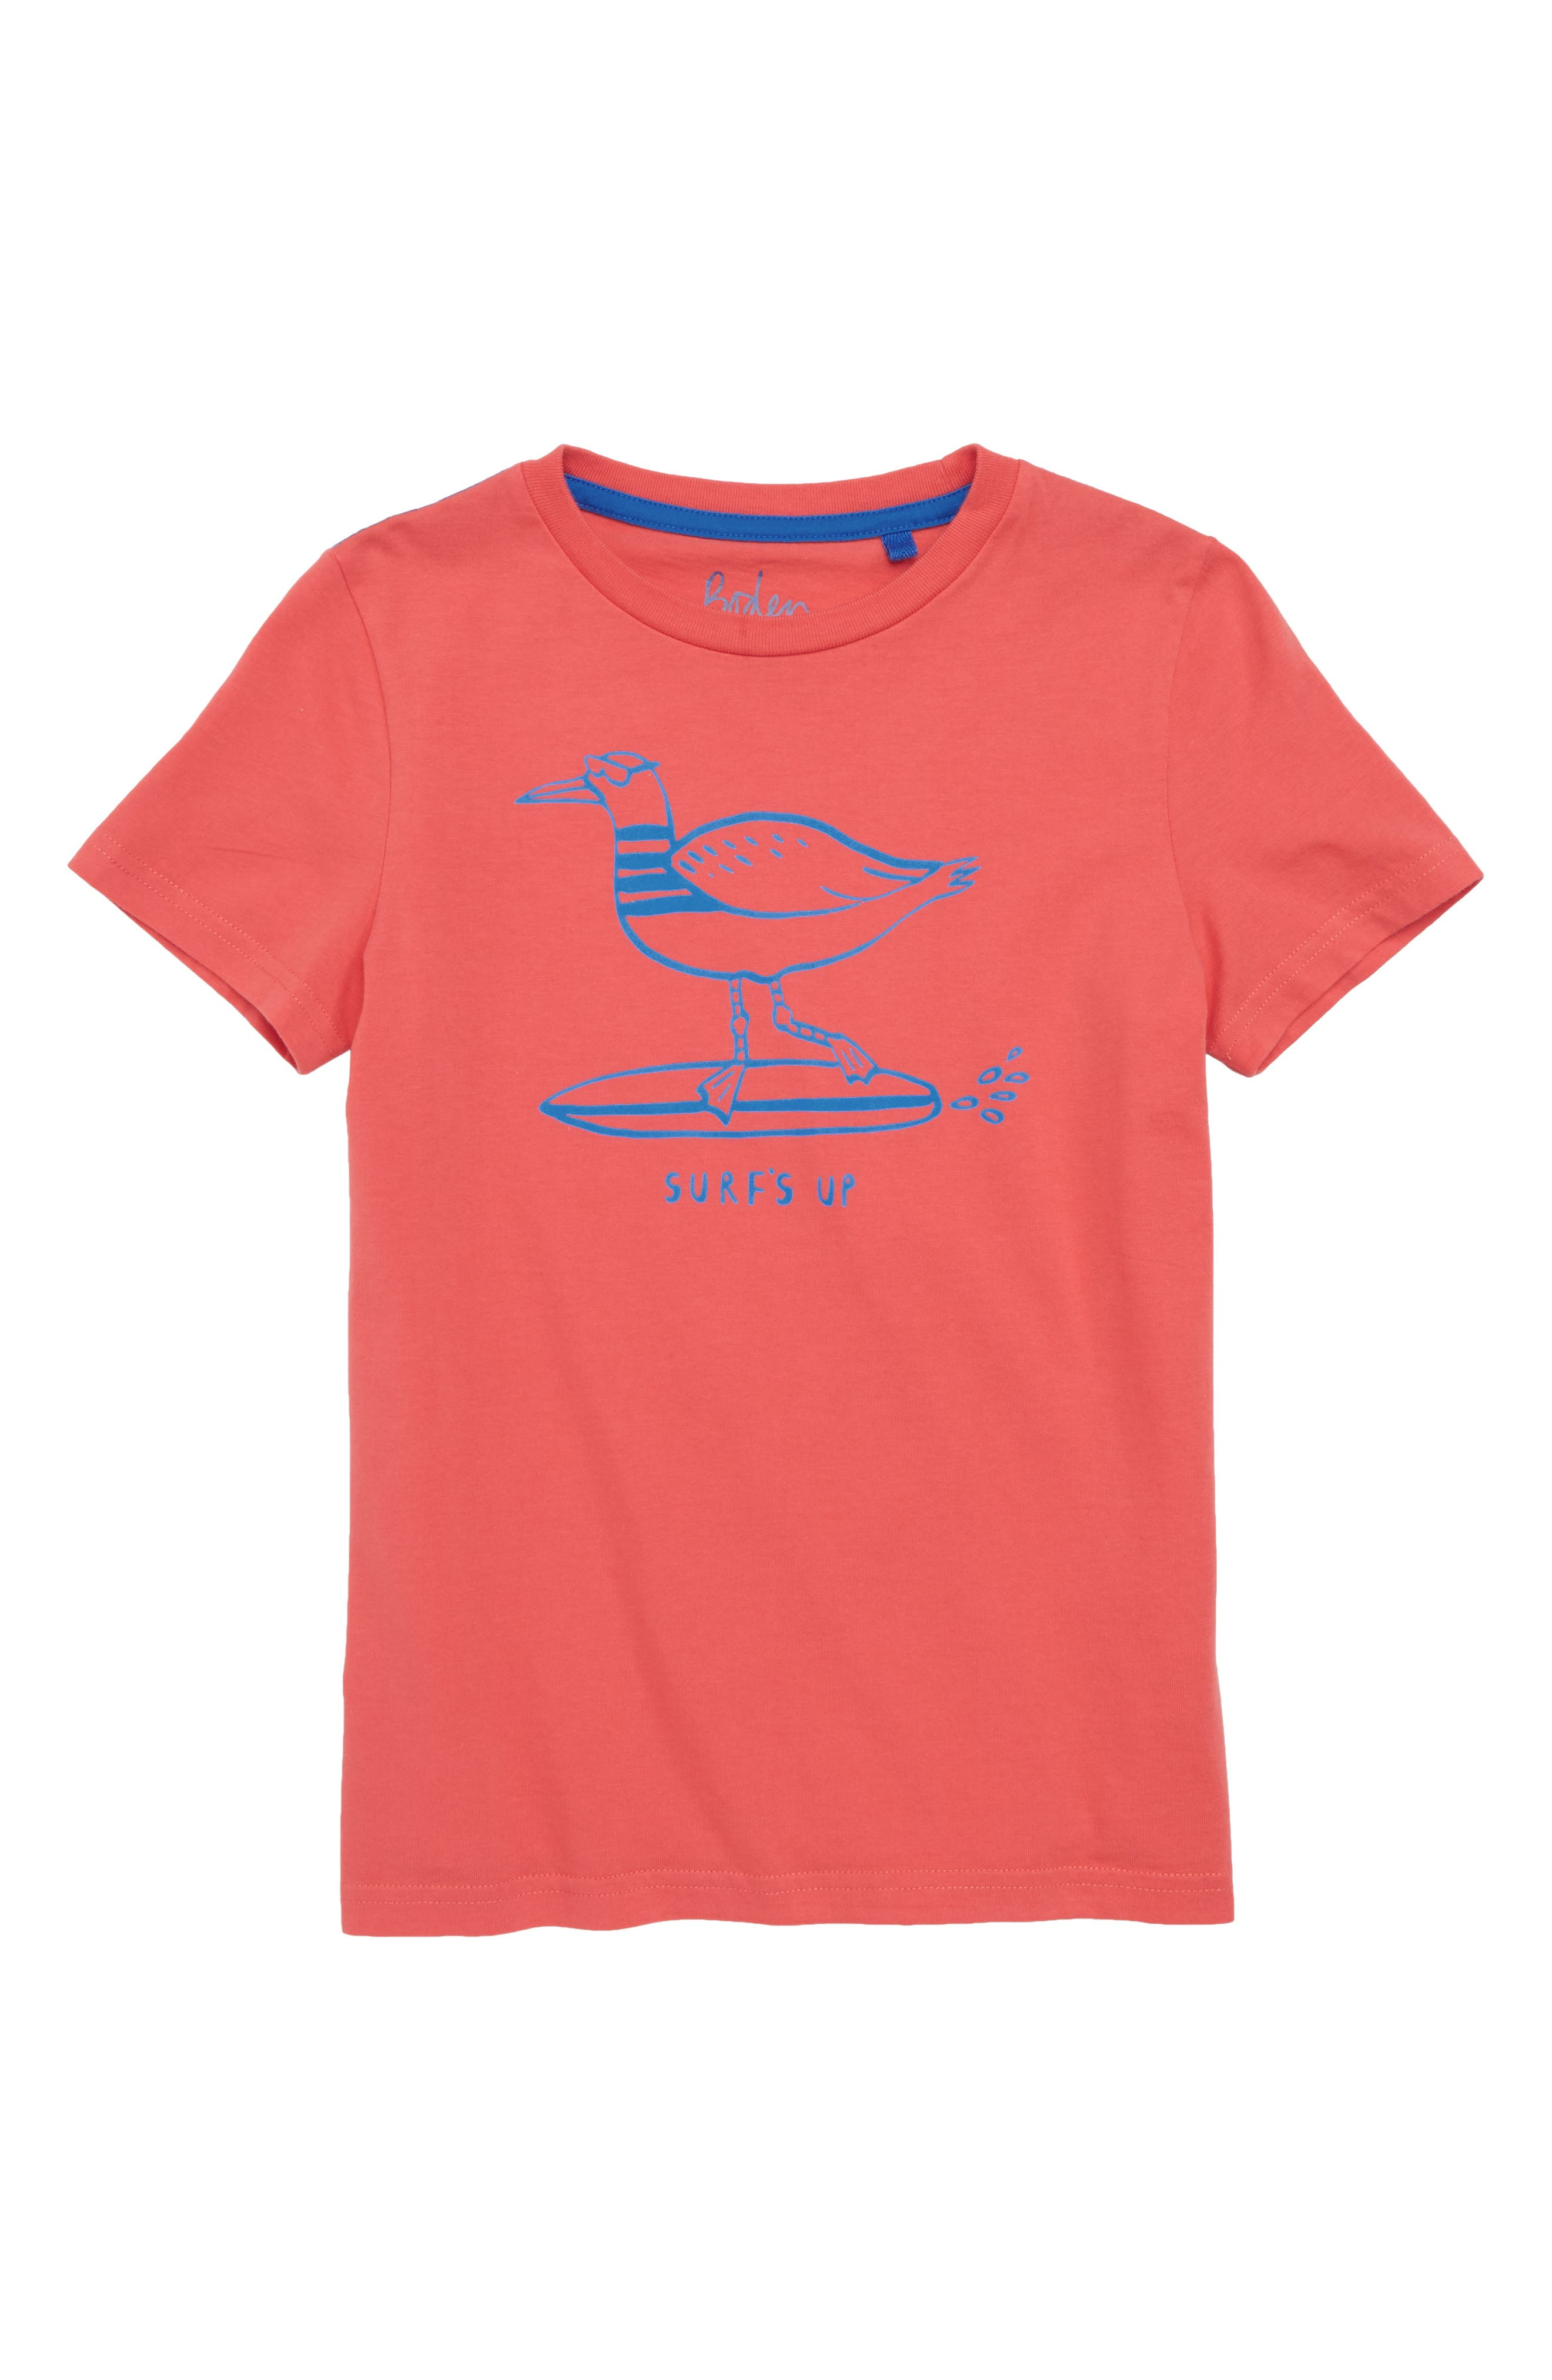 Surf Dude Graphic T-Shirt,                         Main,                         color, Jam Red Surfing Seagull